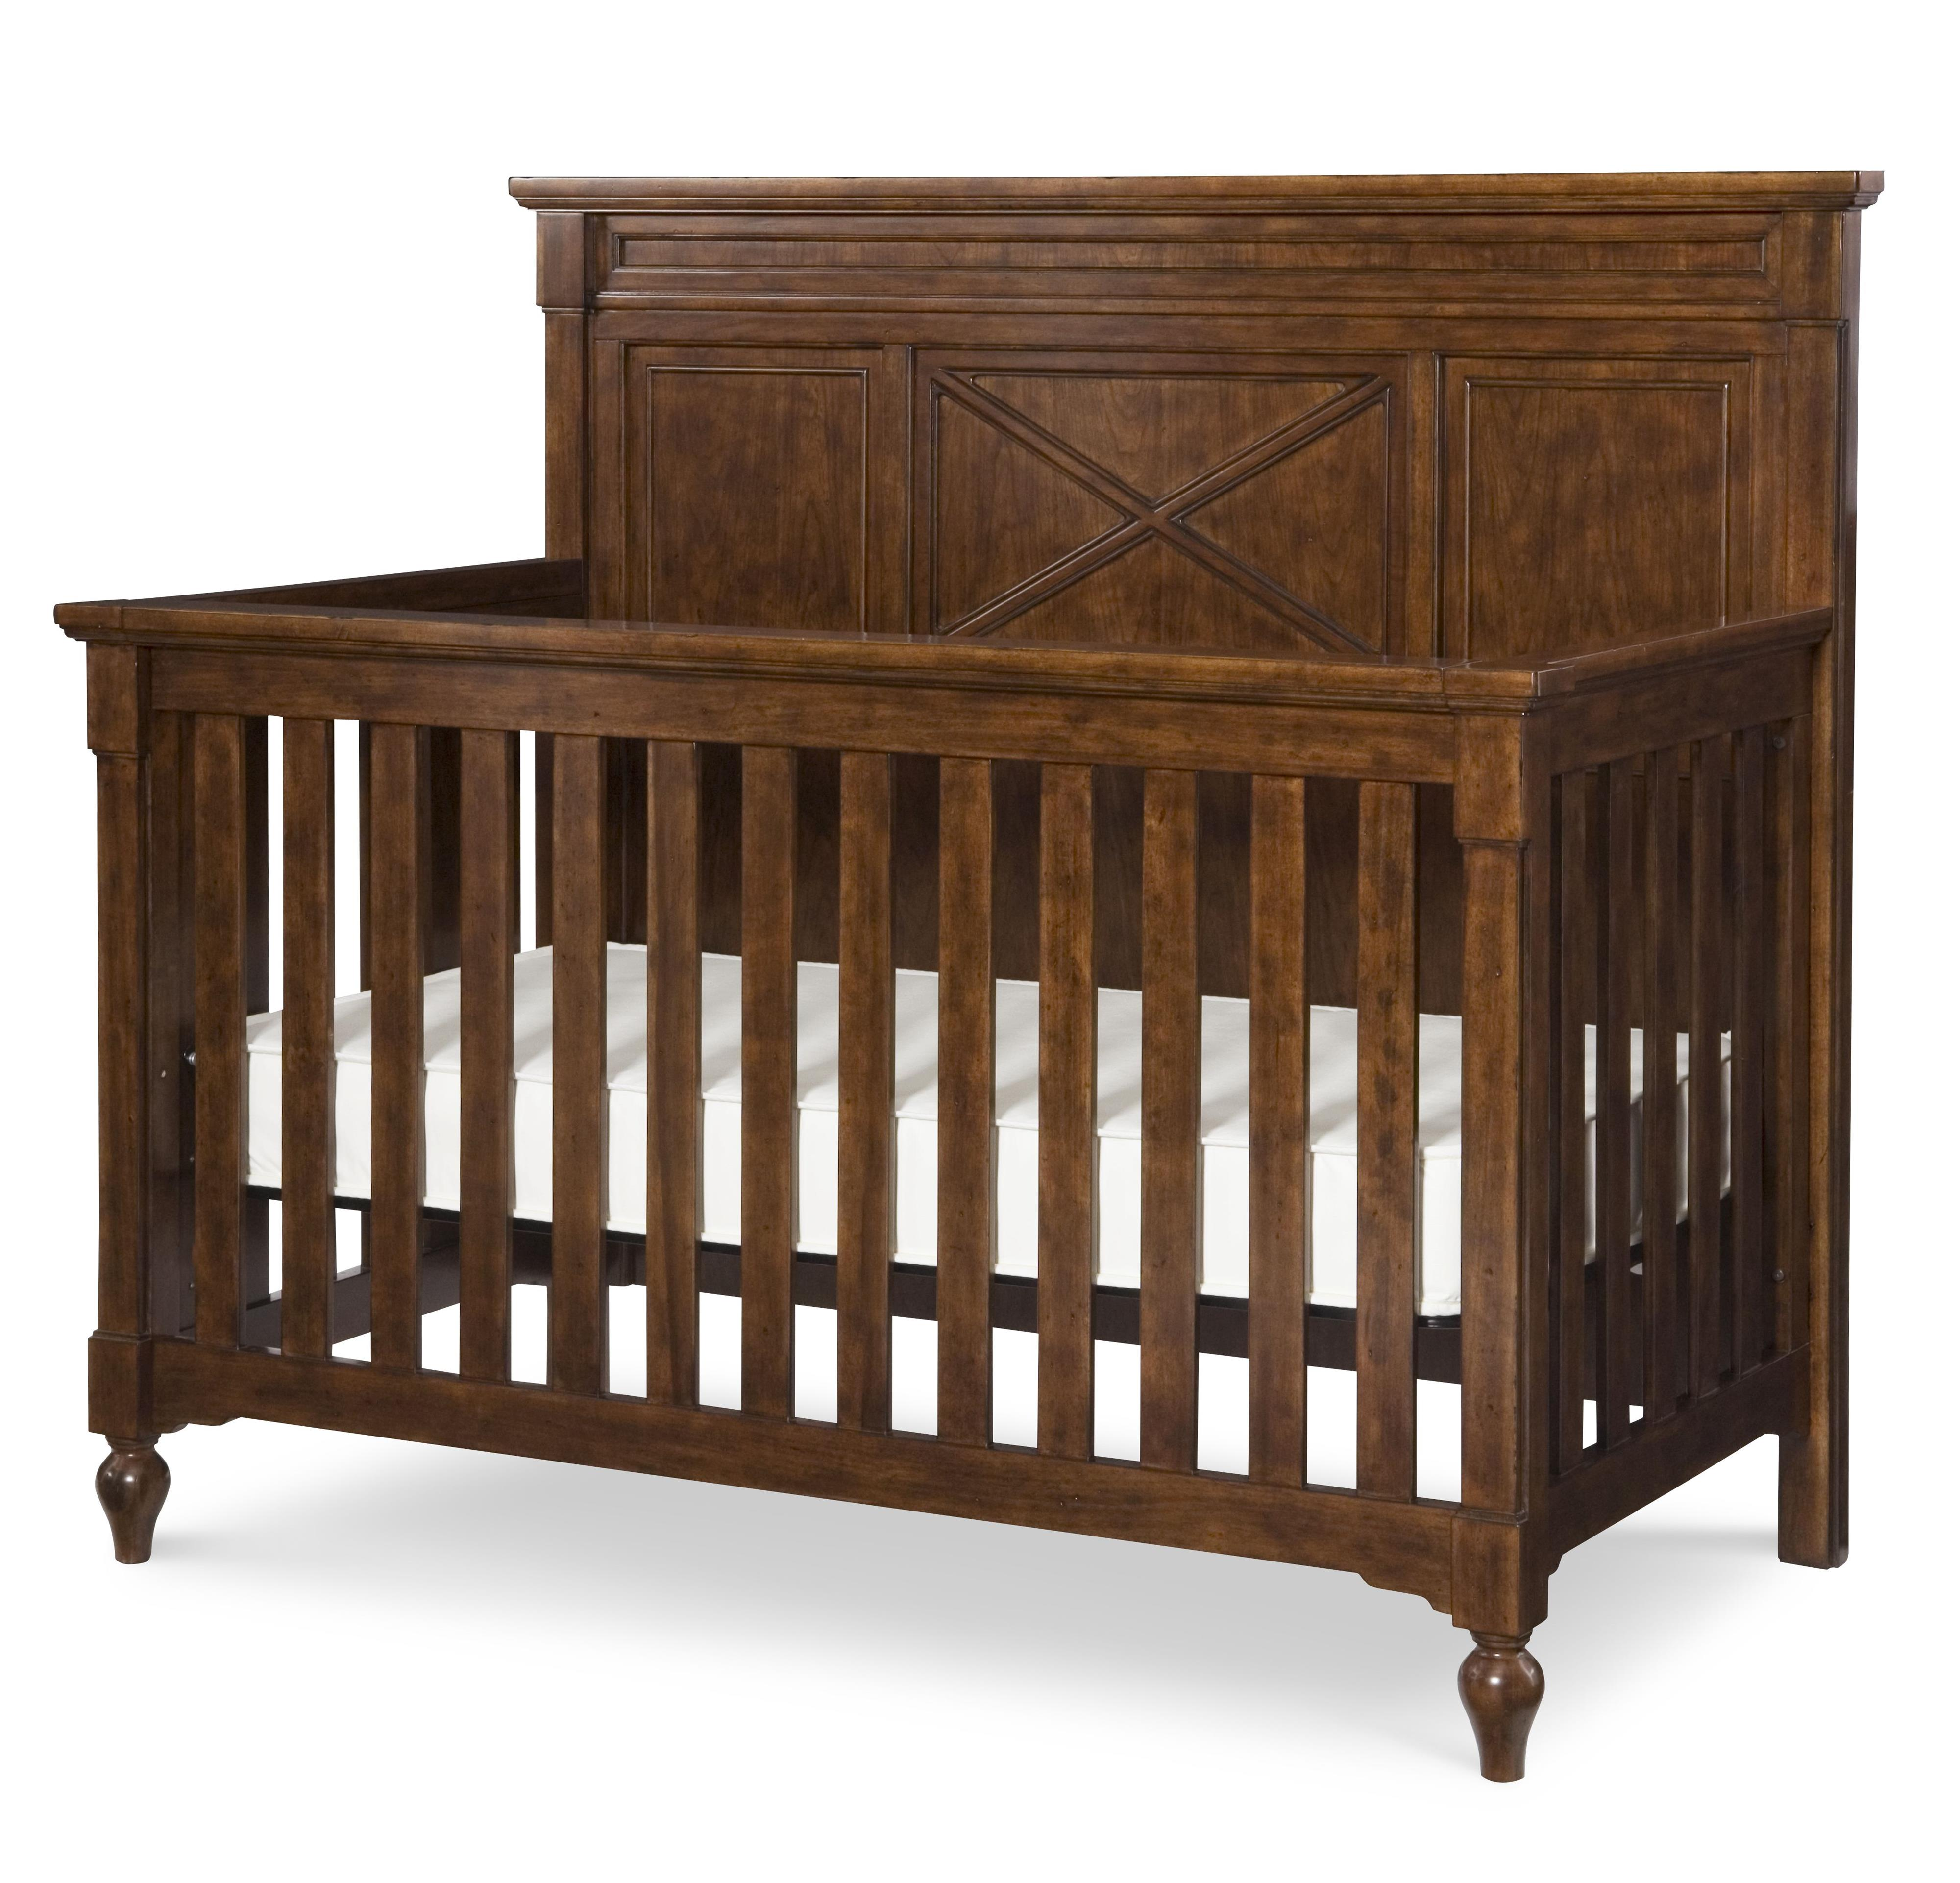 Legacy Classic Kids Big Sur by Wendy Bellissimo Grow with Me Crib - Item Number: 4920-8900+20